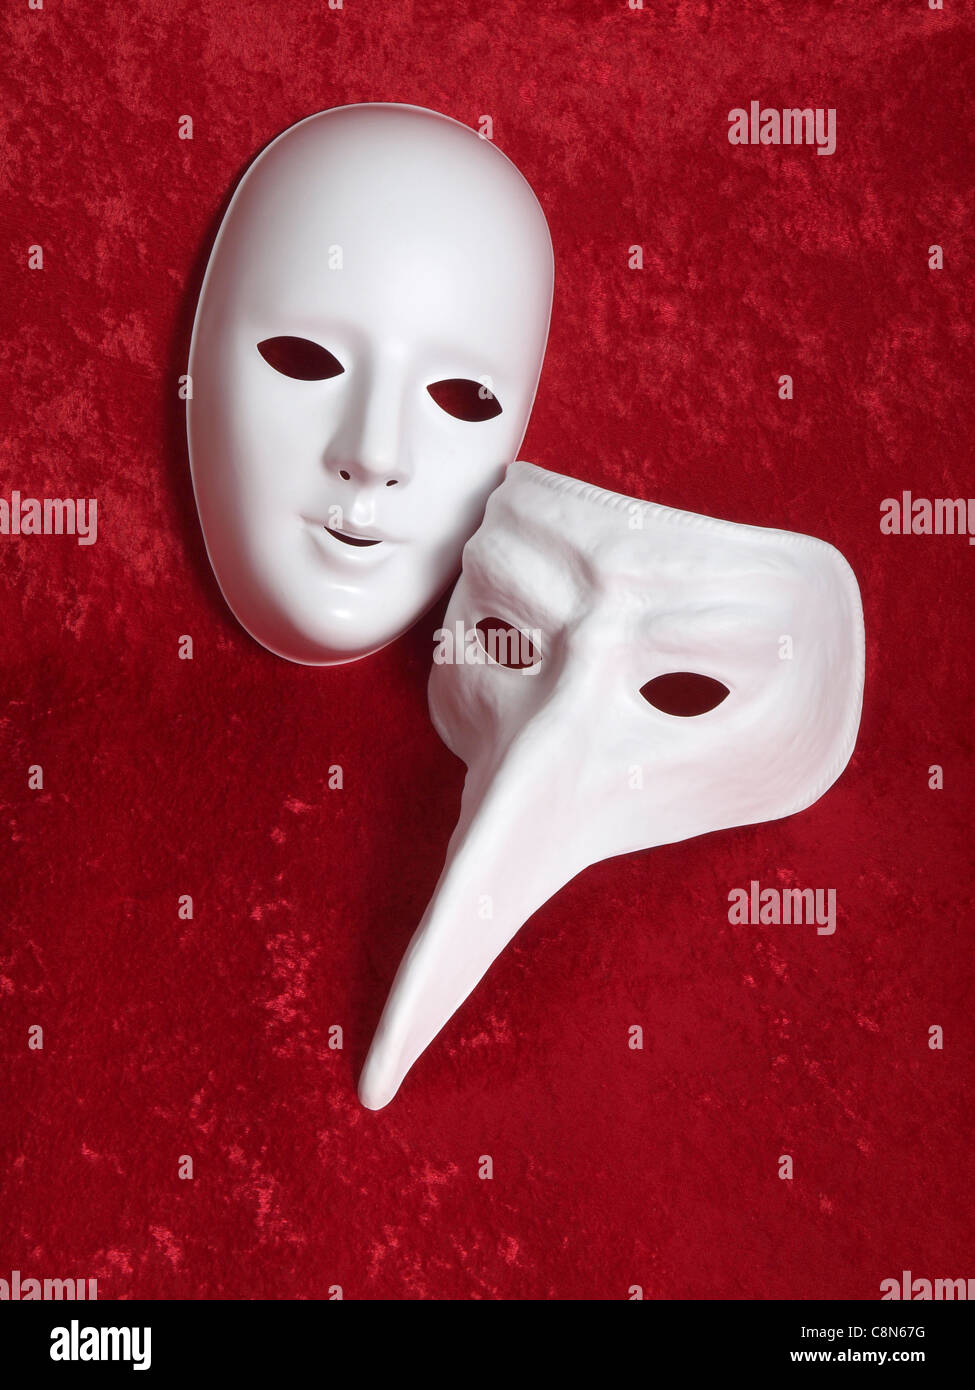 2 white masks on red velvet background - Stock Image